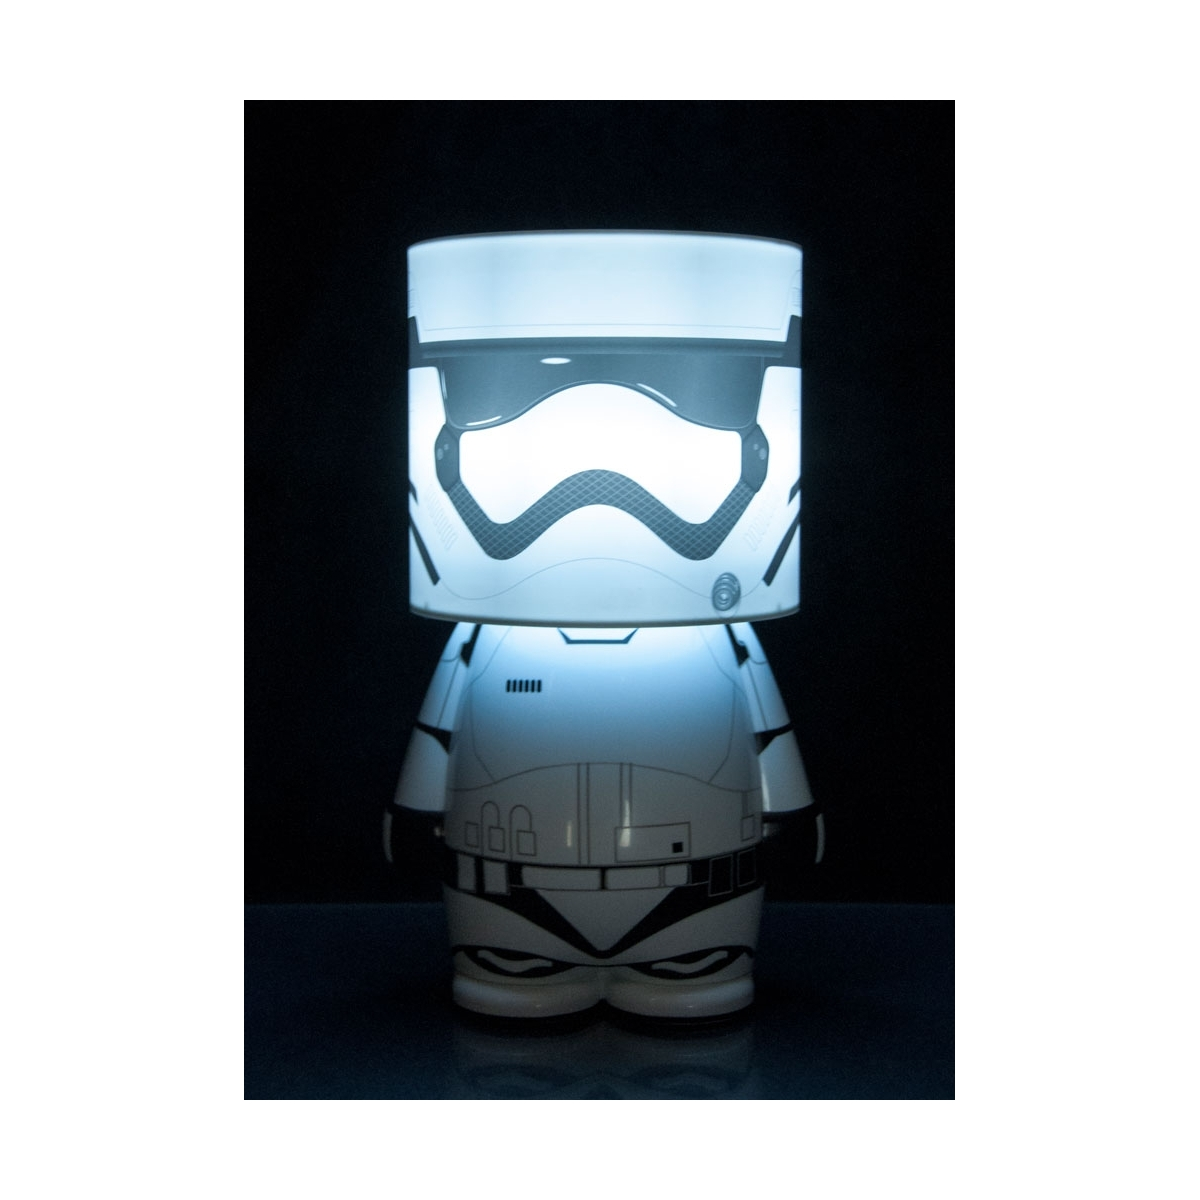 Lampe Ikea Star Wars Star Wars Episode Vii Lampe D 39 Ambiance Look Alite Led